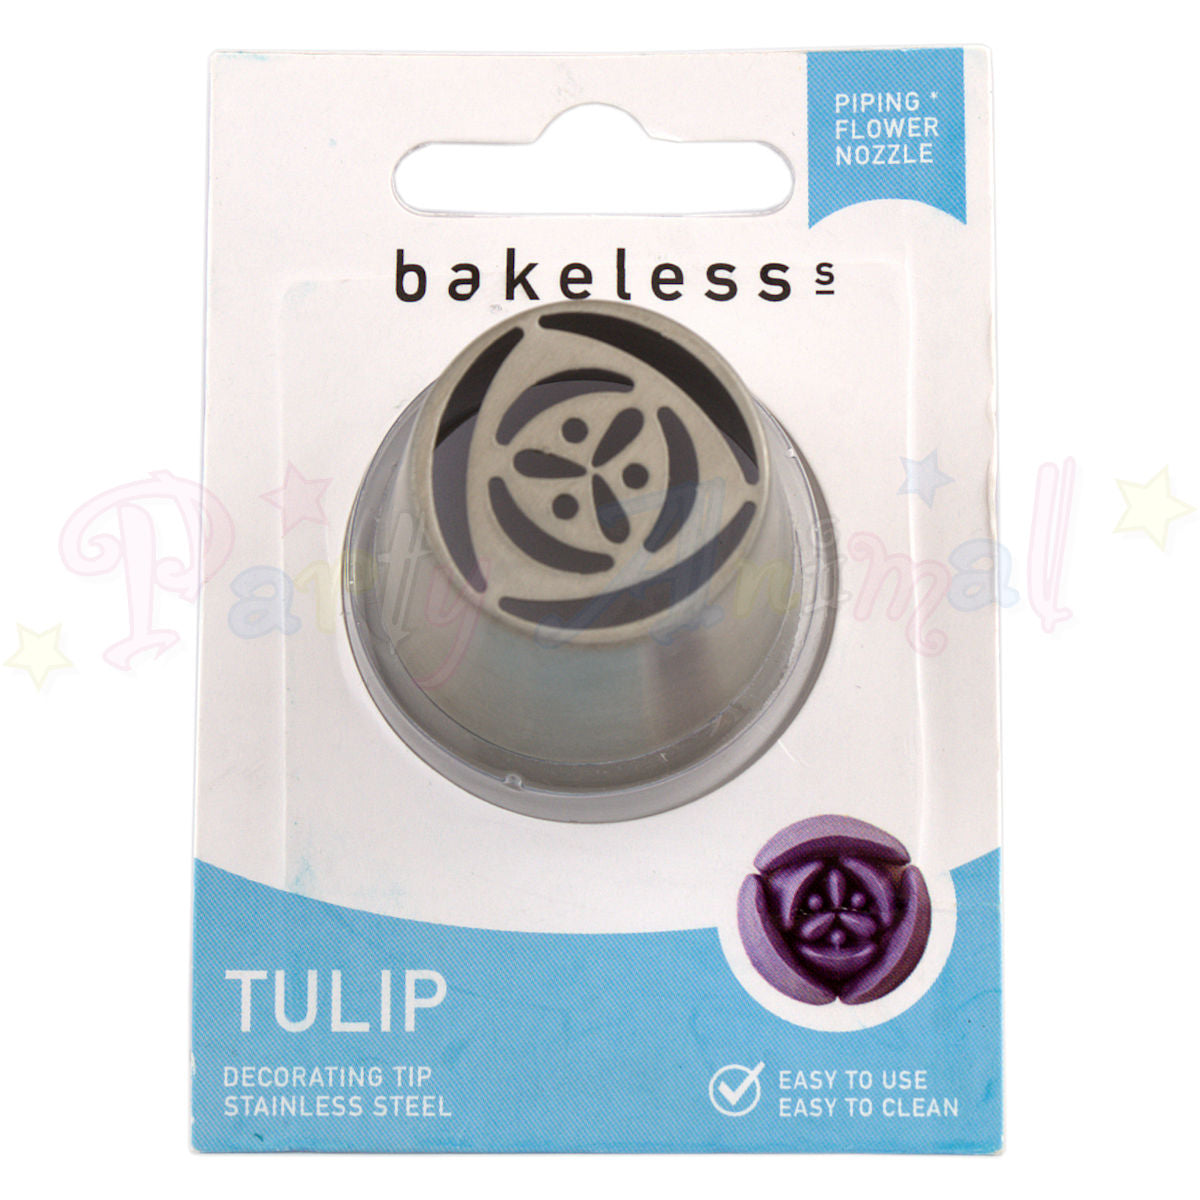 Bakeless Flower Piping Nozzle - Tulip